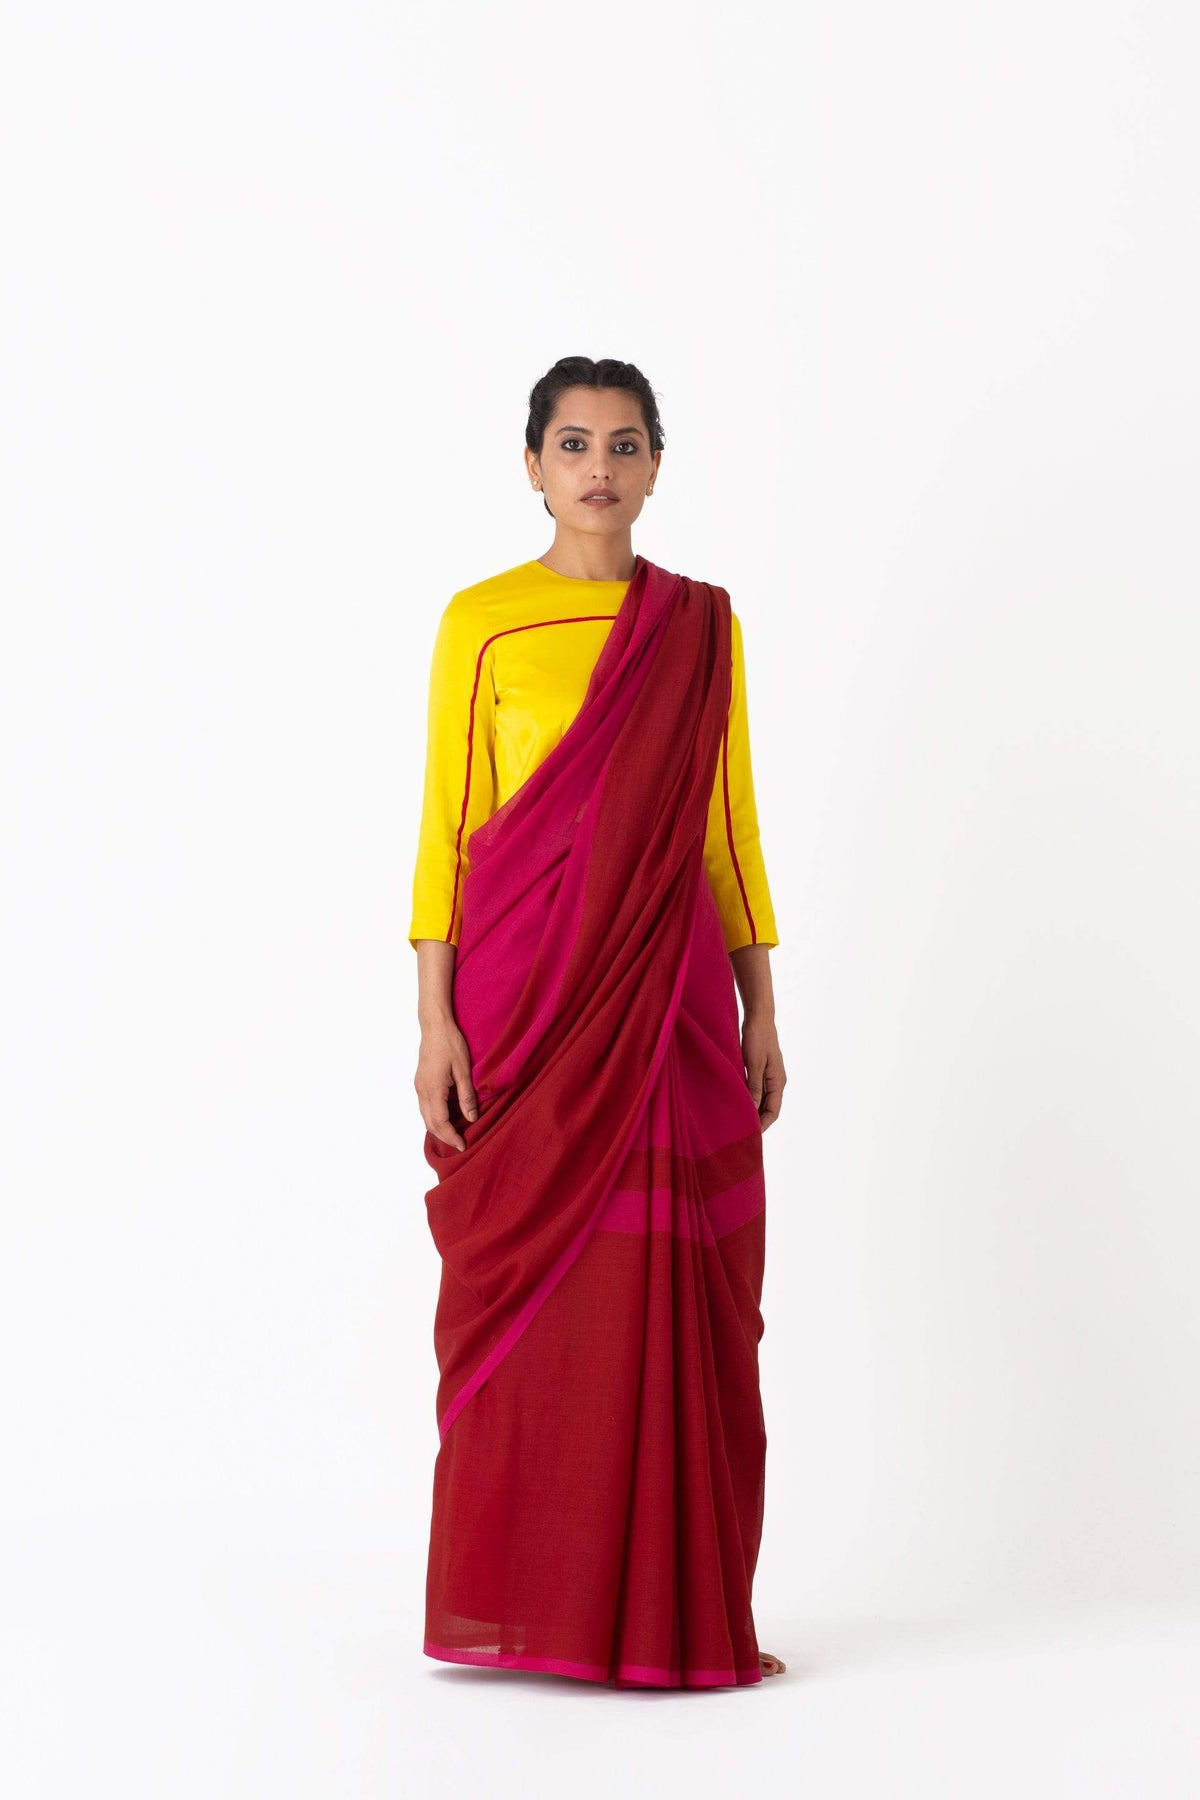 Raw Mango Sarees FS Salma rani-red cotton saree